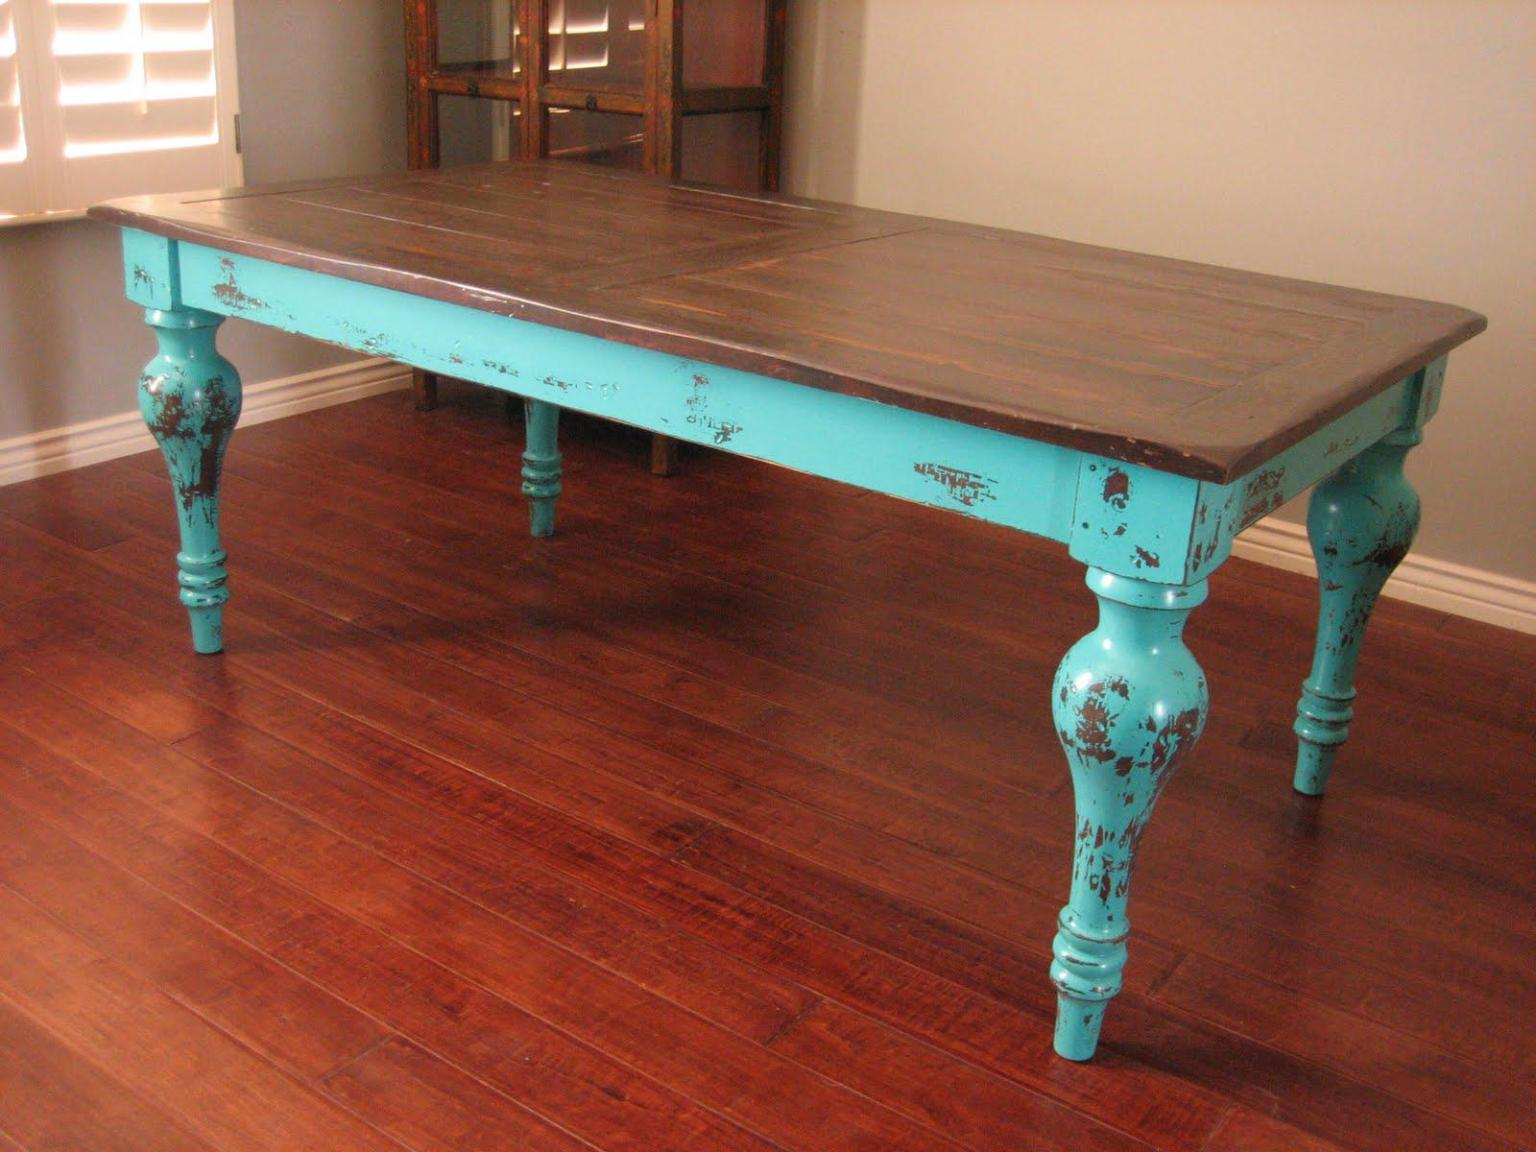 wood table design ideas pictures photo - 6